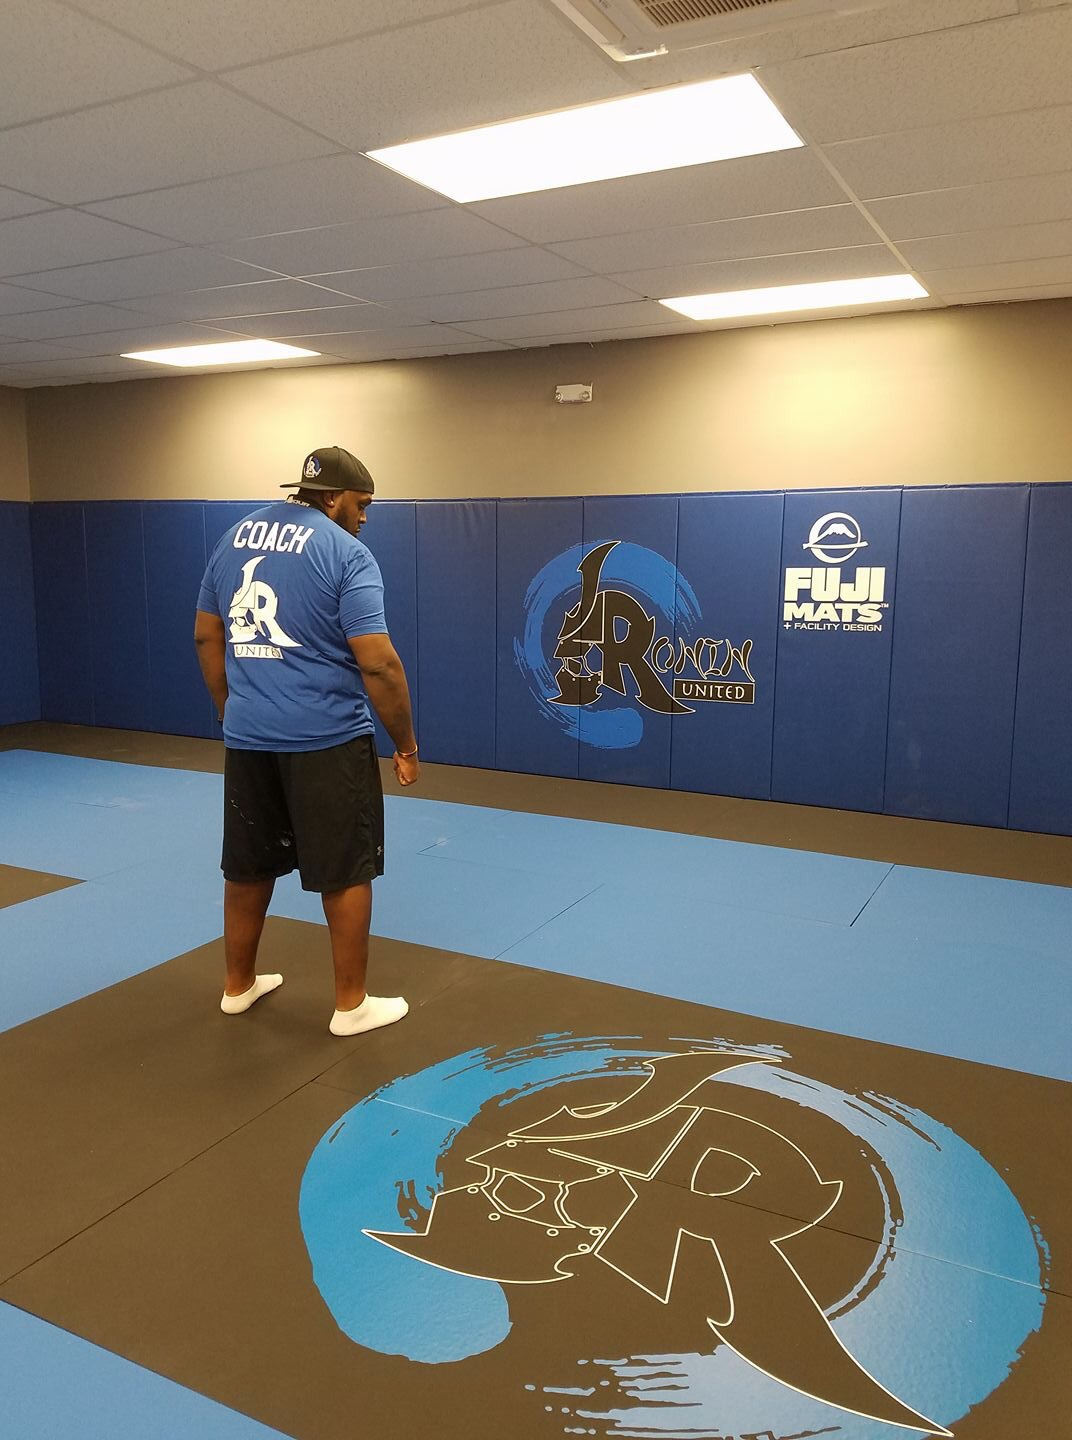 On September 23, 2017, Ronin MMA launches their soft-opening for the newly created mixed martial arts gym located in Franklin Square, New York.